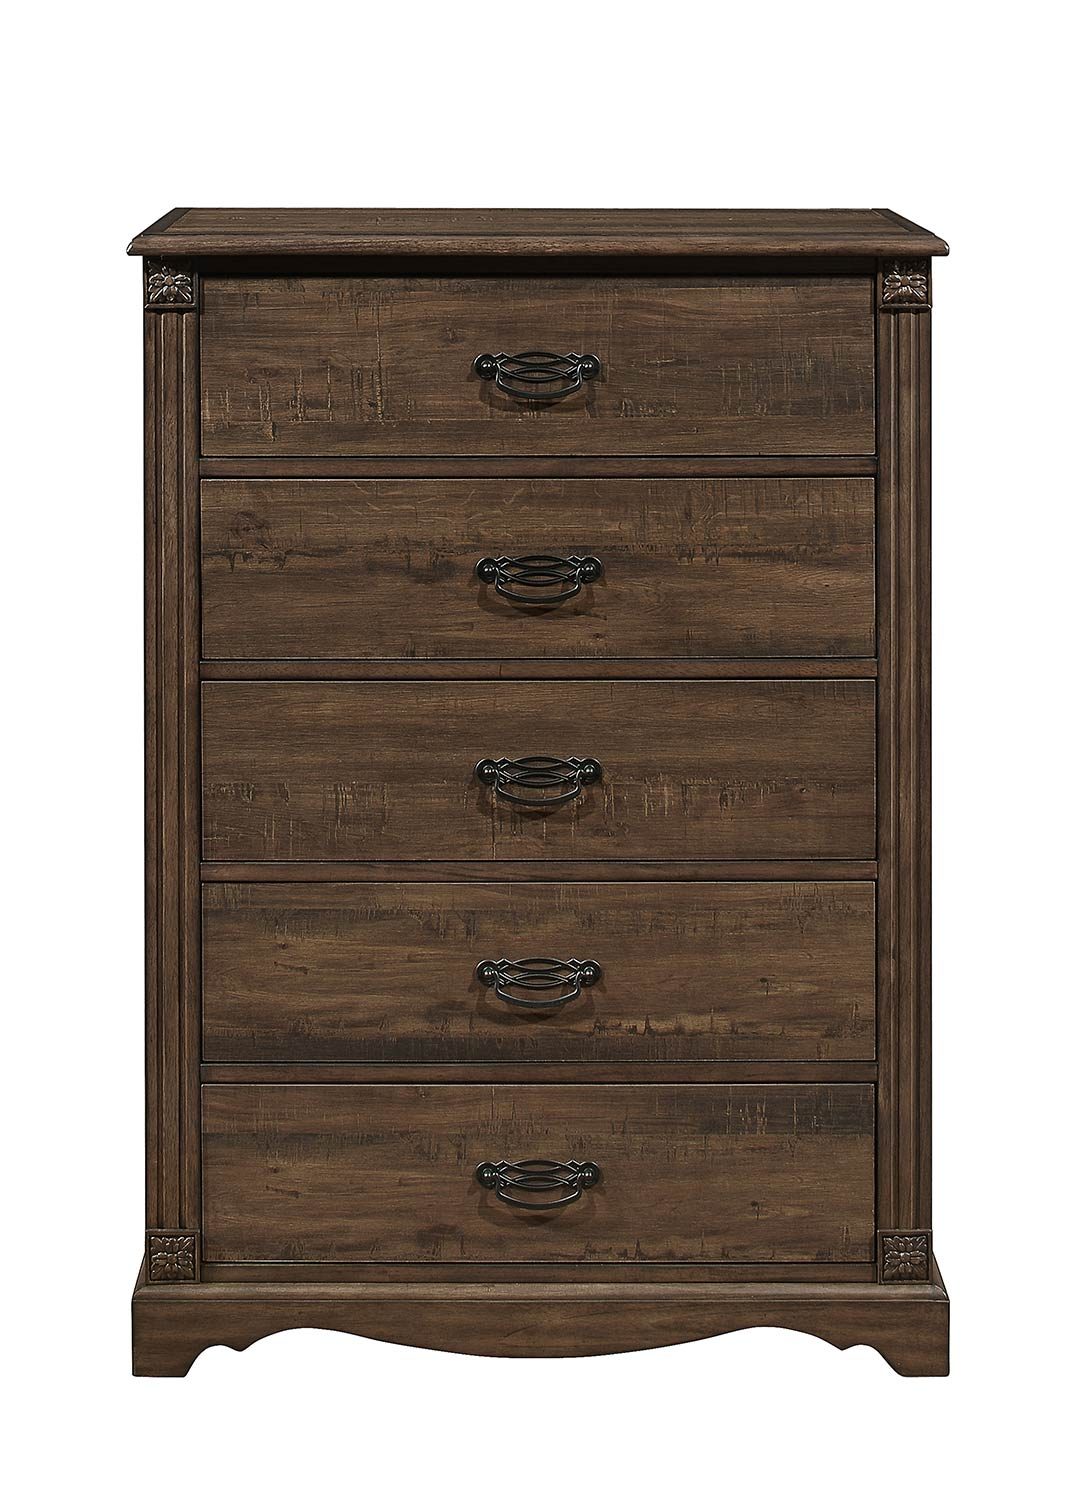 Homelegance Beaver Creek Chest - Rustic Brown